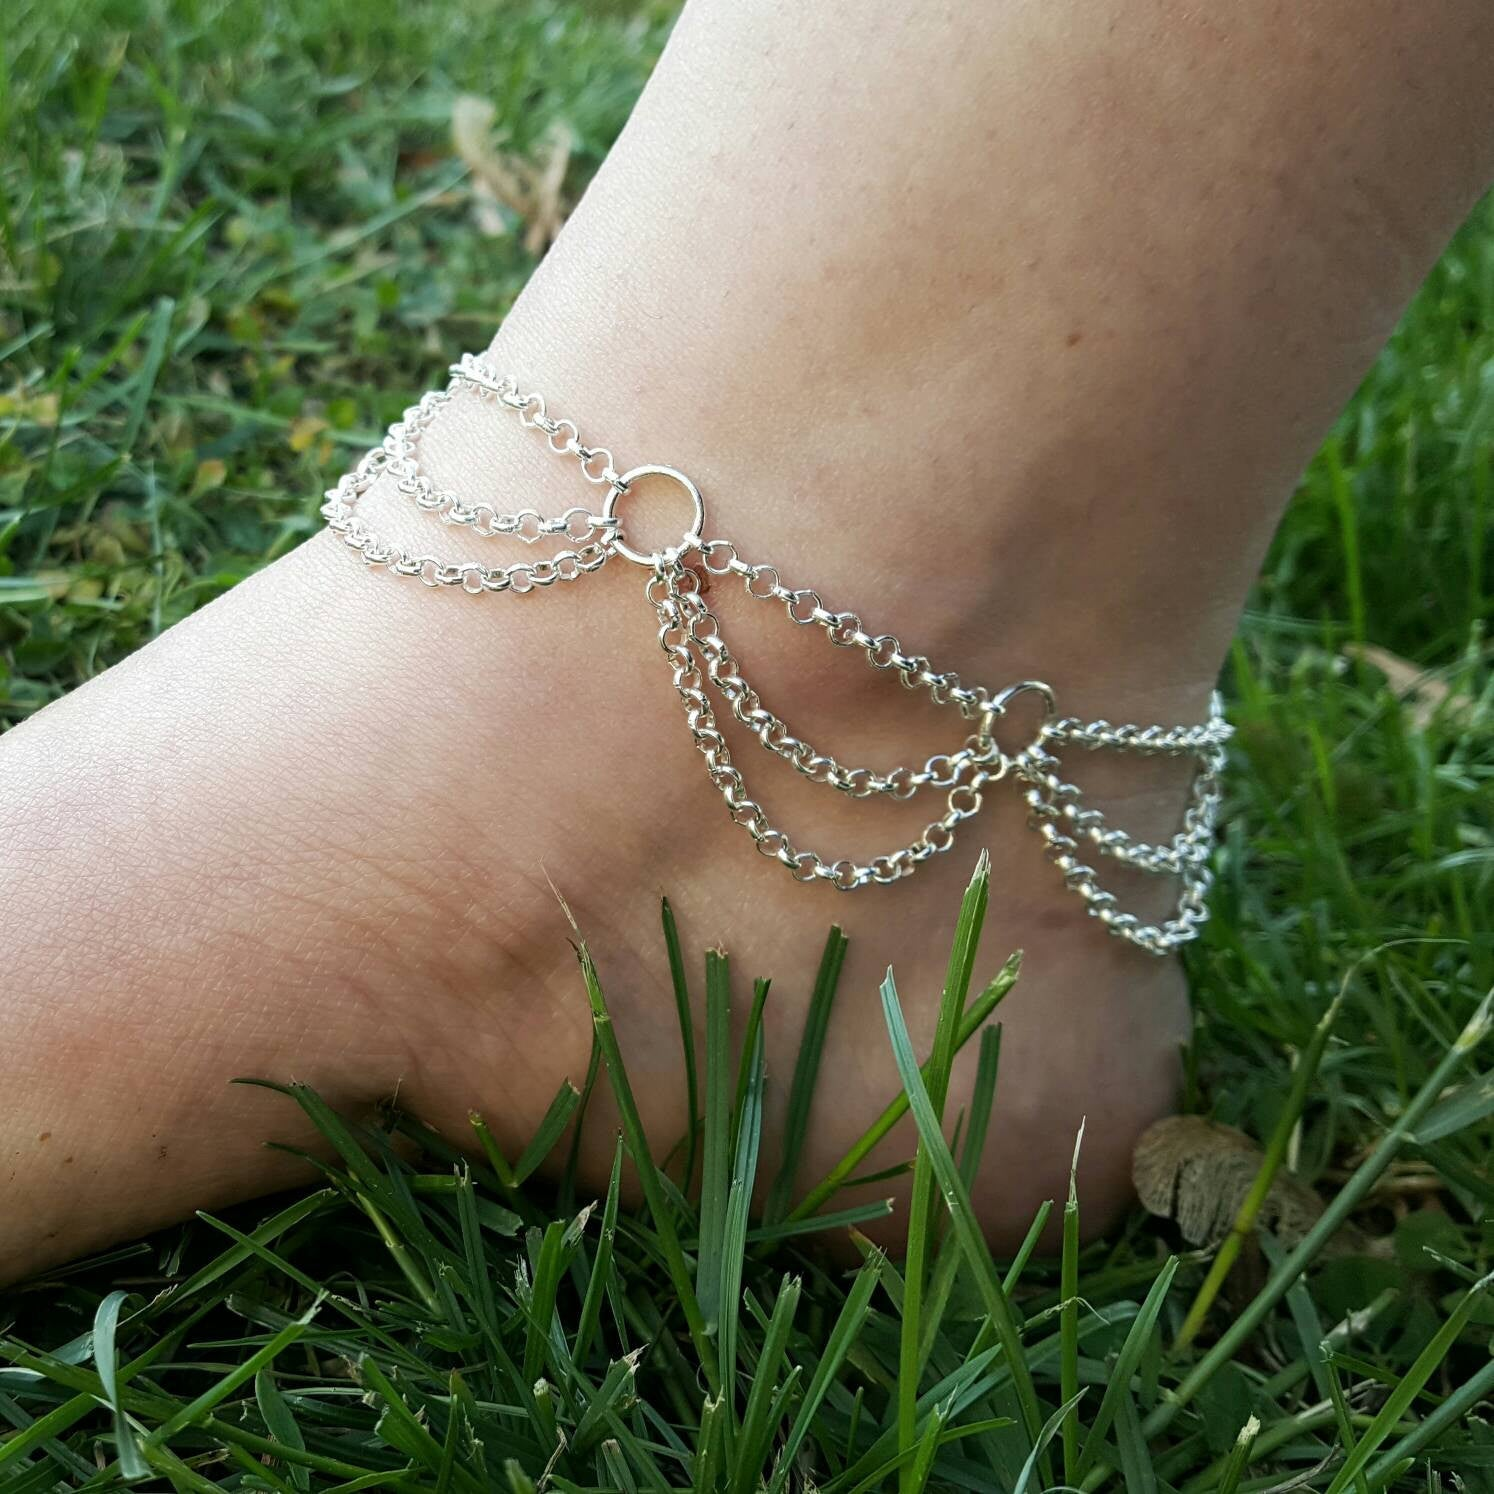 Draped Silver Anklet Summer Beach Festival Jewelry - DRAVYNMOOR